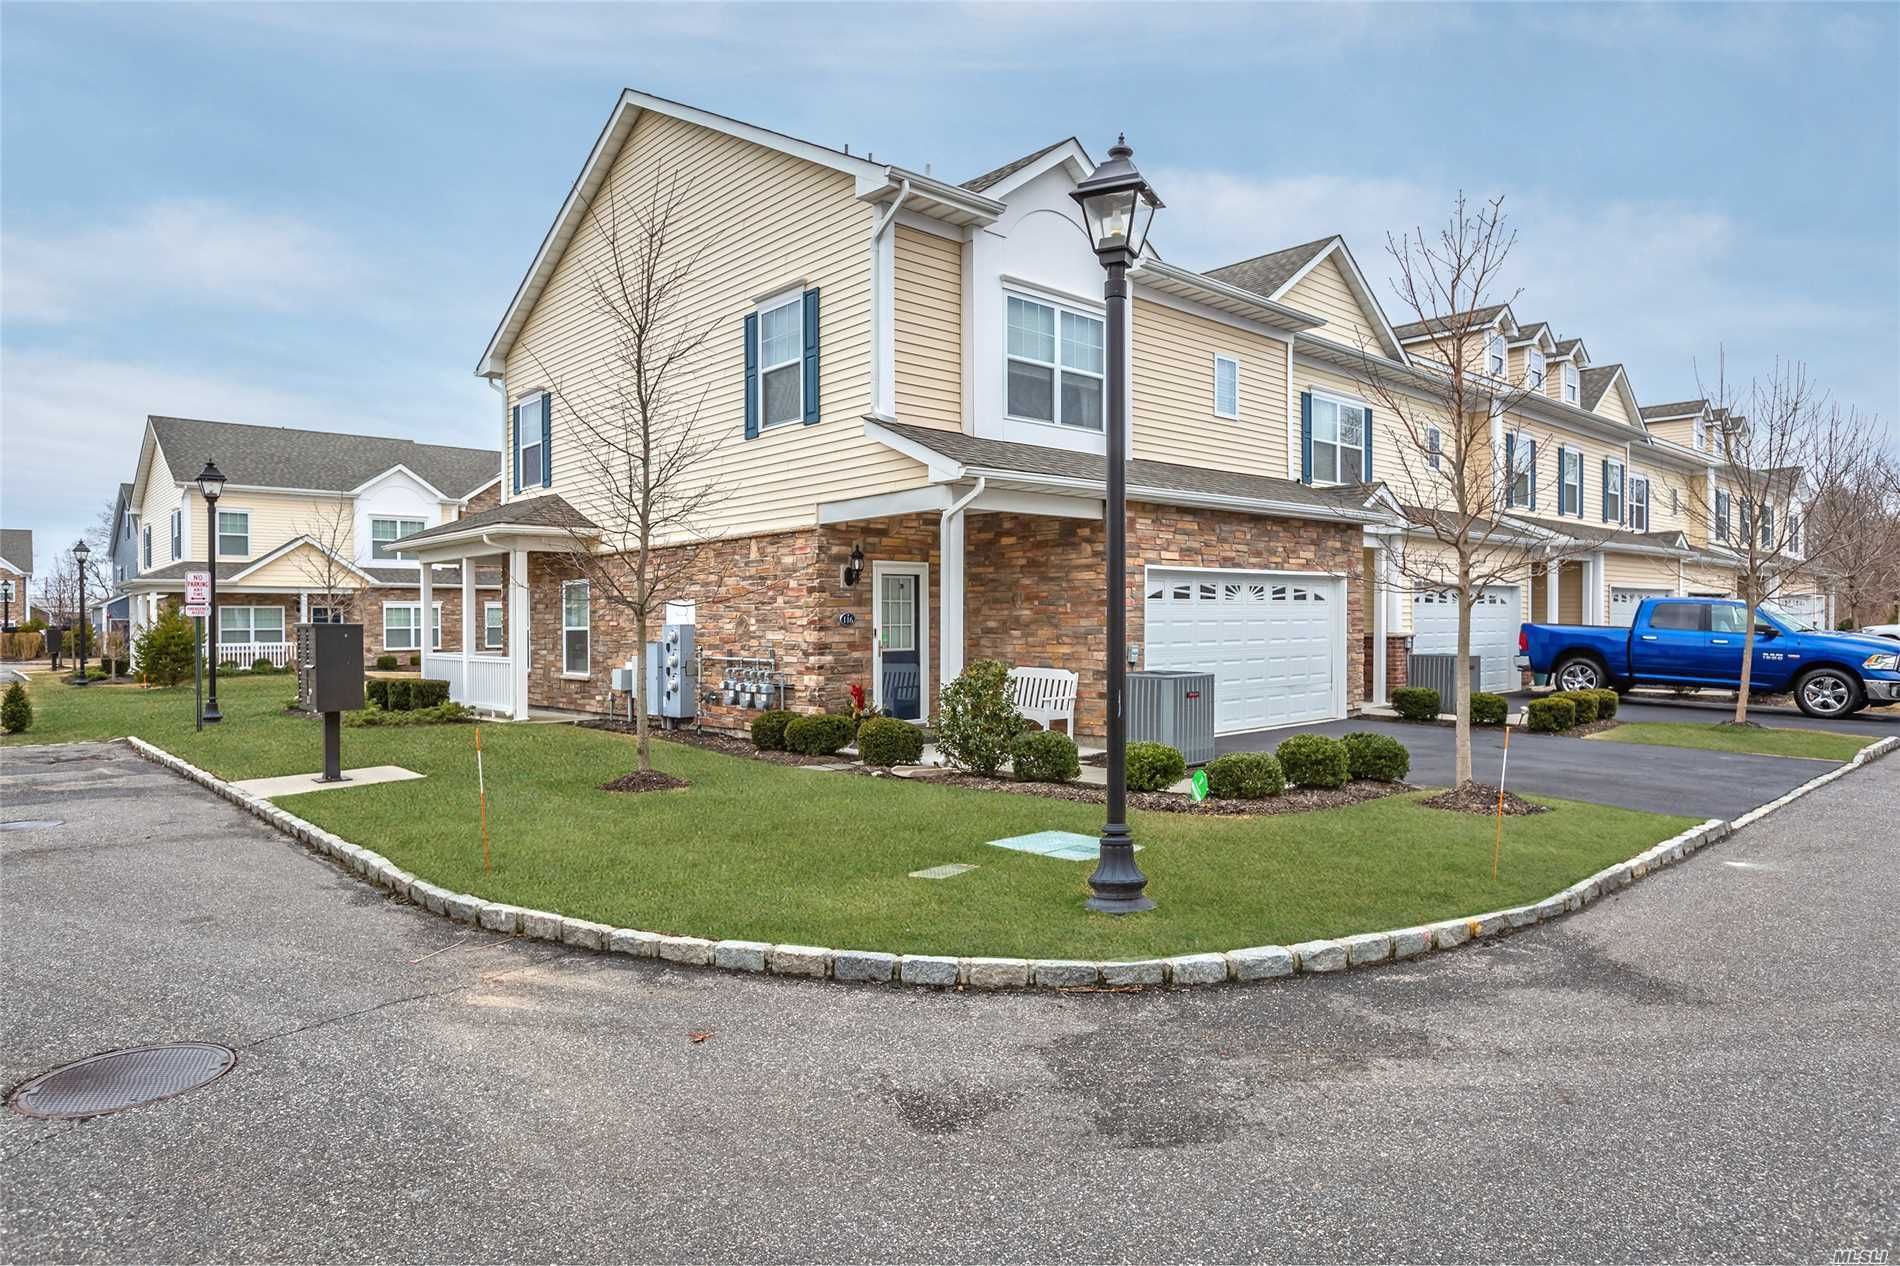 116 Millie Ct - Patchogue, New York